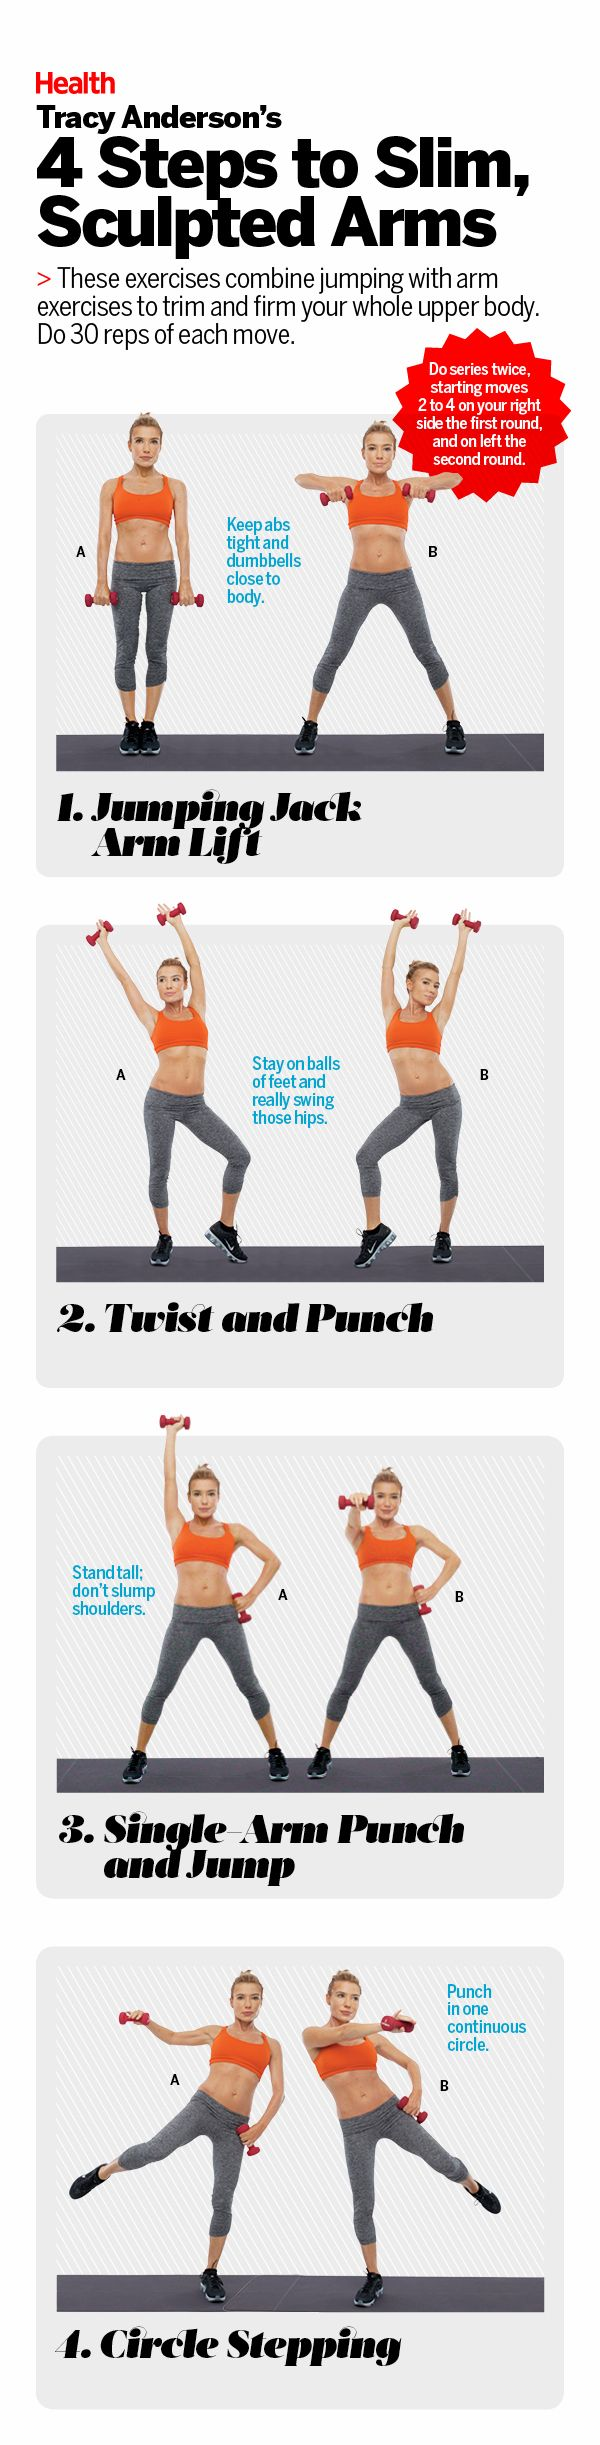 4 steps to slim, sculpted arms with Tracy Anderson. These exercises combine jumping with arm exercises to trim and firm your whole upper body. #HEALTHxTA | Health.com